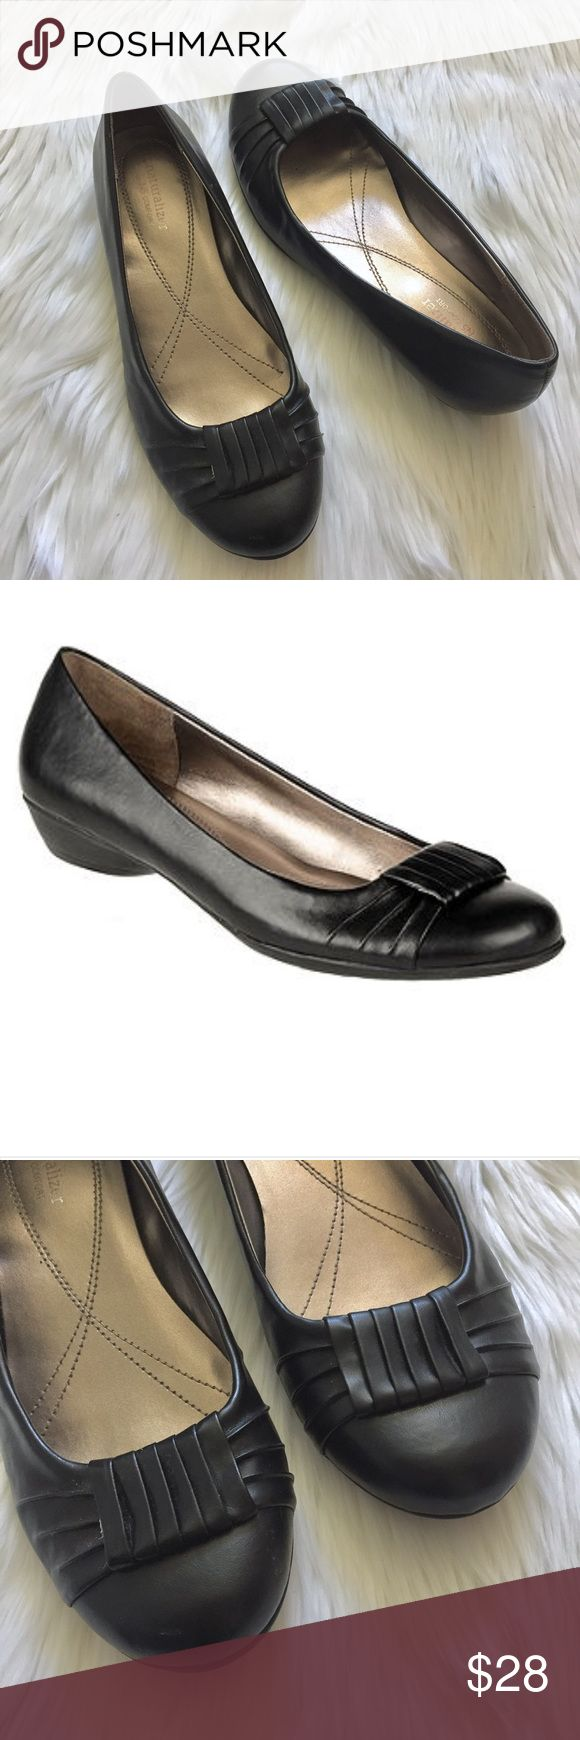 "Naturalizer Hollie Black Ballet Flats Comfortable faux leather loafer ballet shoes with a slight heel (3/4"".) Cute pleated bow detail over toe. Very little wear. ▪️Size 8M ▪️Style name Hollie Naturalizer Shoes Flats & Loafers"